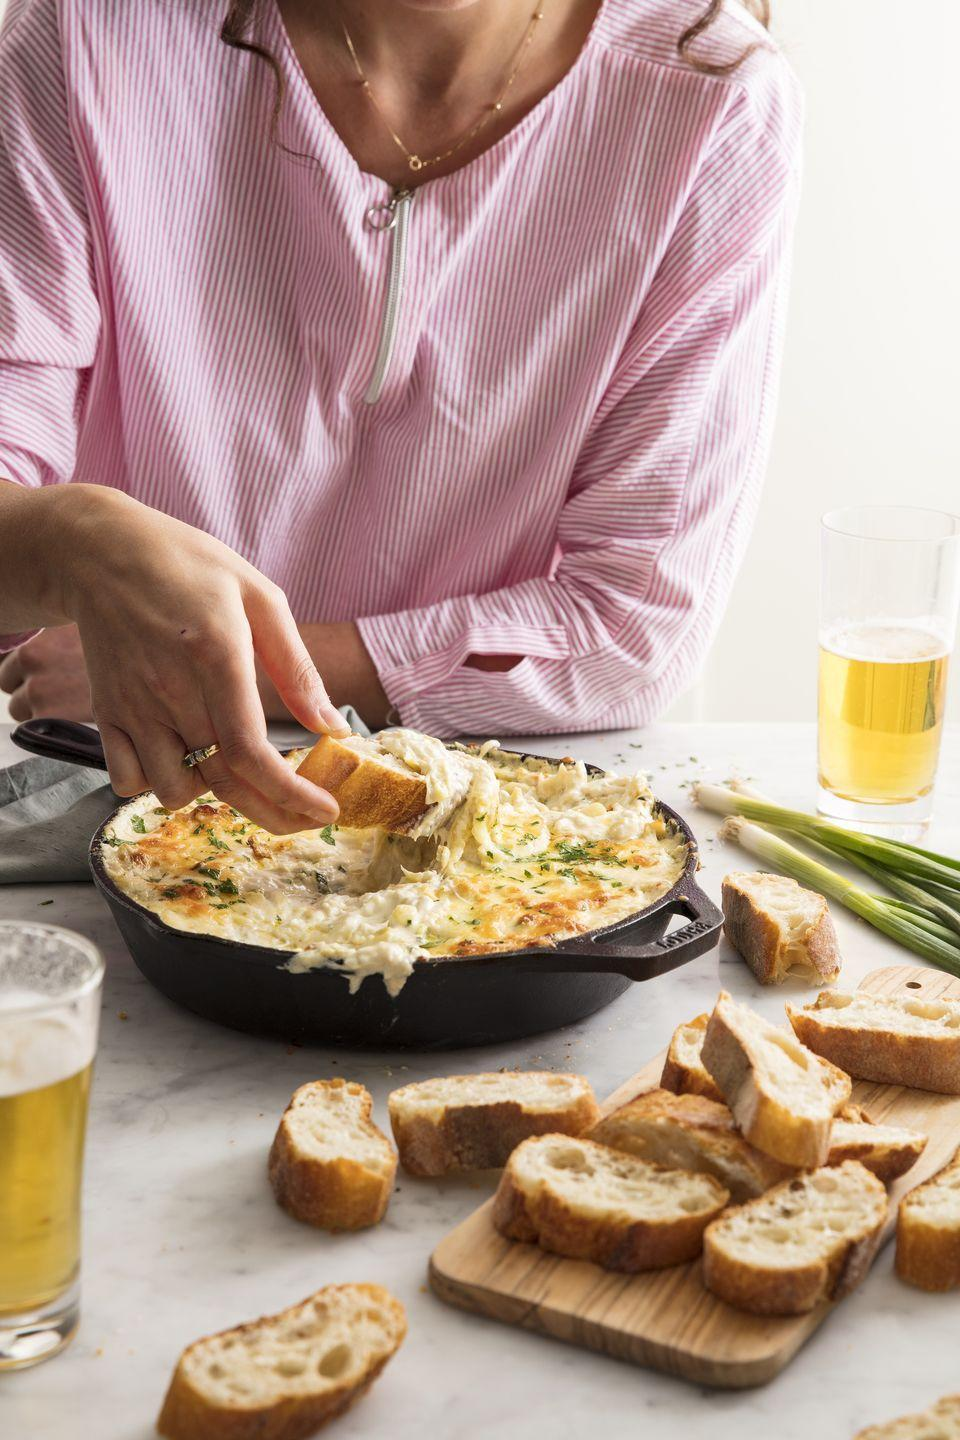 """<p>This dip will make you forget all about plain spinach and artichoke.</p><p>Get the recipe from <a href=""""https://www.delish.com/cooking/recipe-ideas/recipes/a49883/crab-artichoke-dip-recipe/"""" rel=""""nofollow noopener"""" target=""""_blank"""" data-ylk=""""slk:Delish"""" class=""""link rapid-noclick-resp"""">Delish</a>. </p>"""